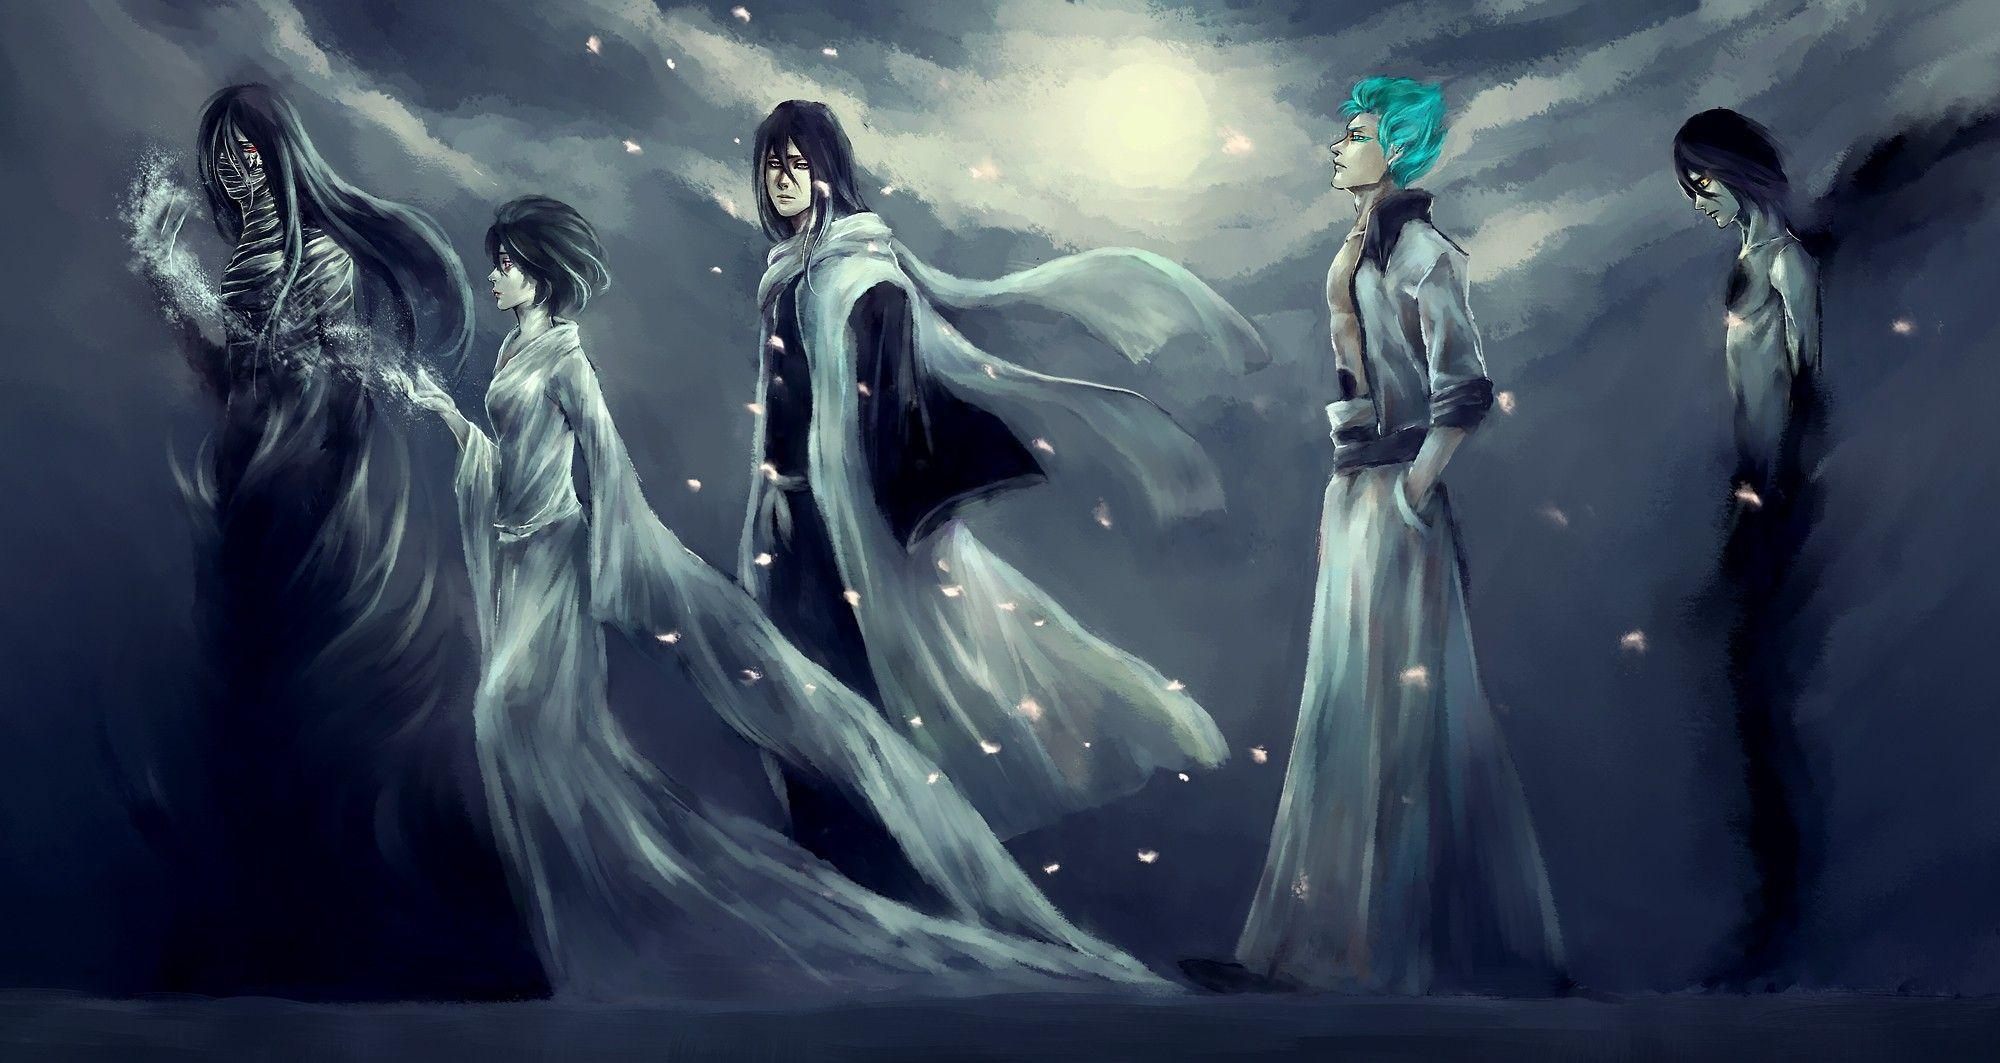 Bleach Ichigo Bankai Wallpaper Hd